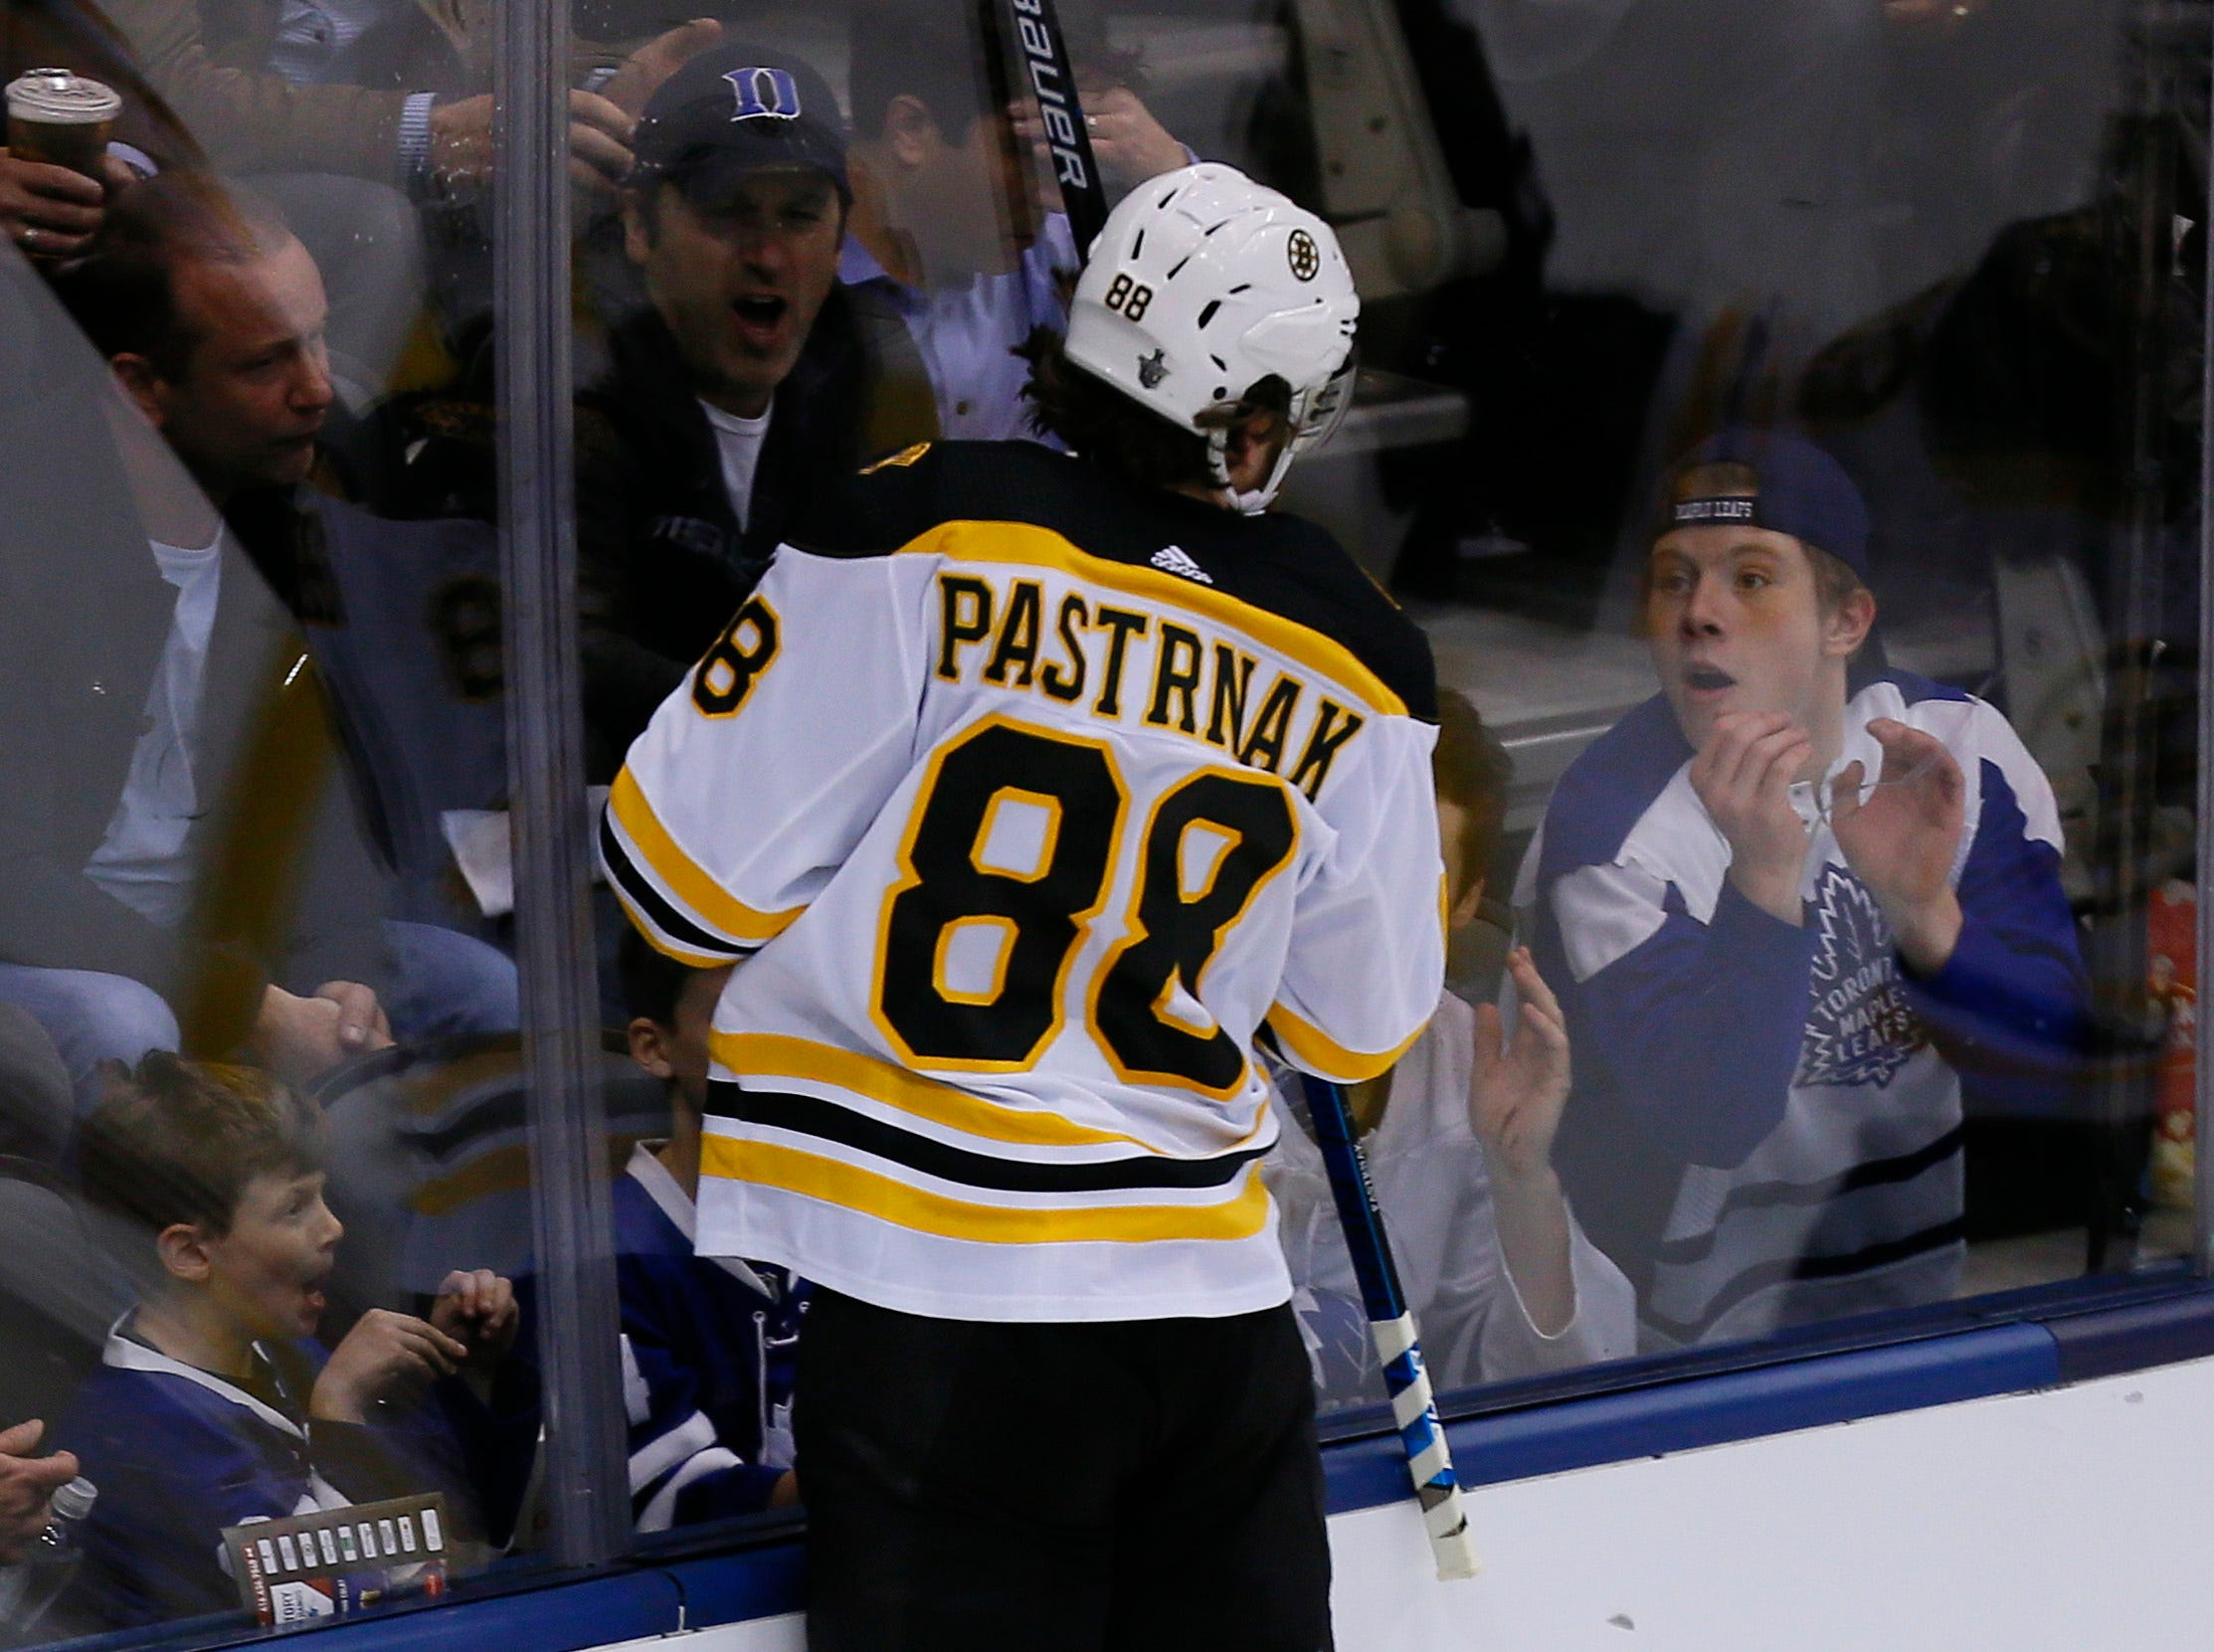 First round: Boston Bruins forward David Pastrnak celebrates after scoring a goal against the Toronto Maple Leafs during the second period of Game 4.